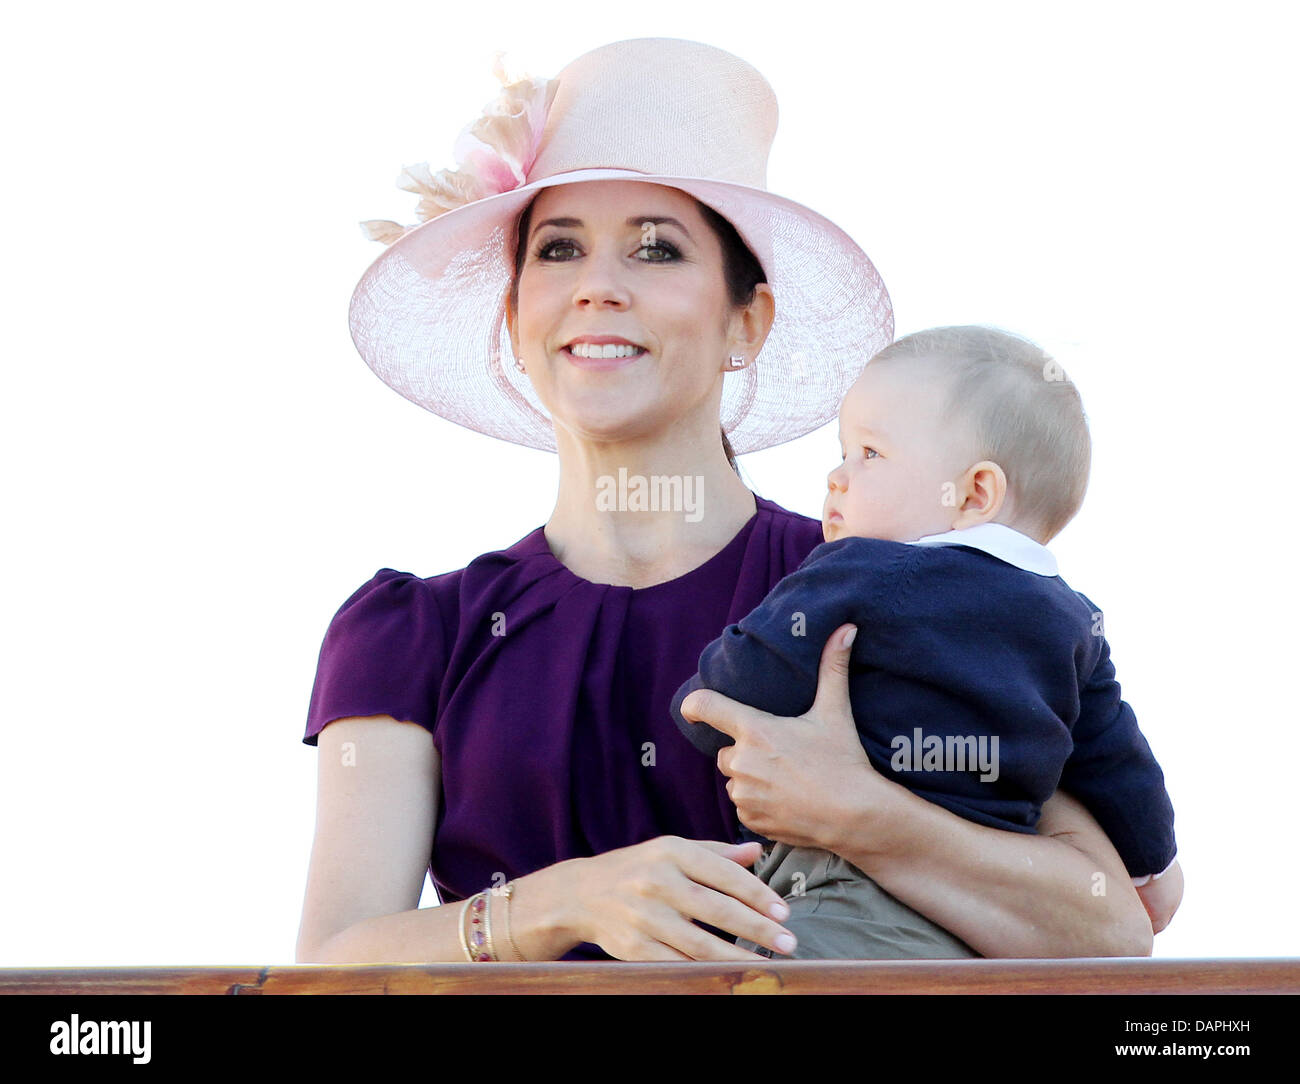 Danish Crown Princess Mary arrives with Prince Vincent on 22 August 2011 in Skagen, Denmark, during their summer - Stock Image